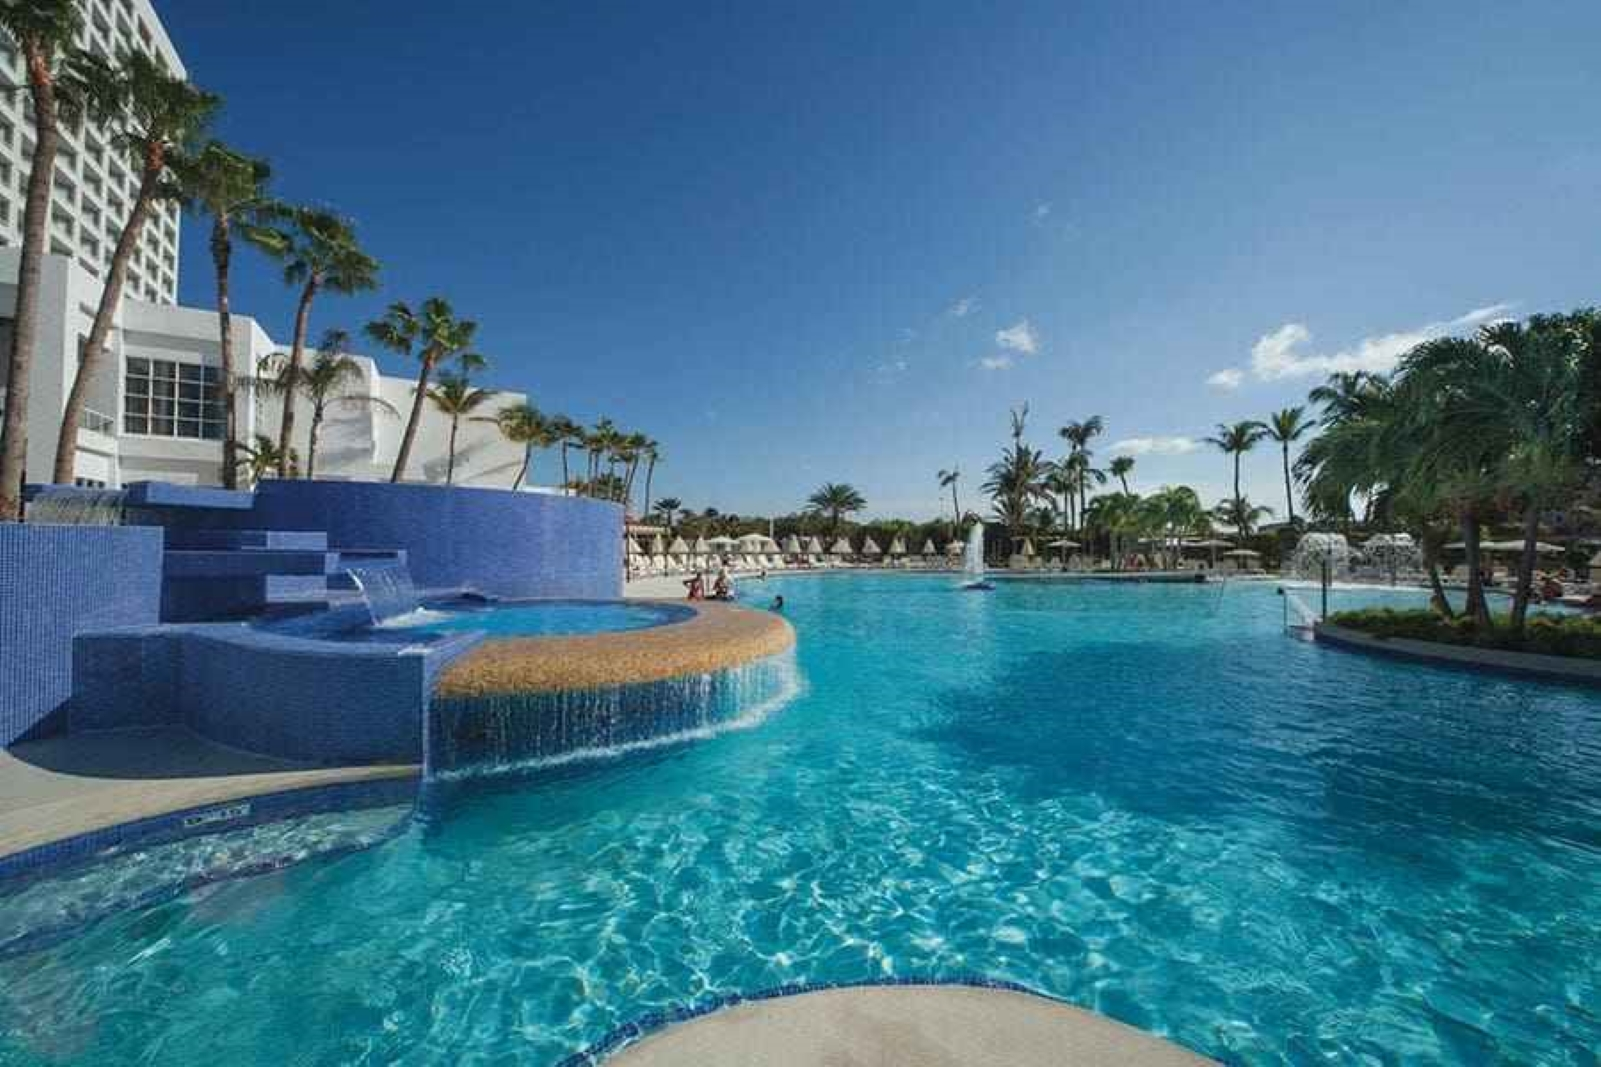 Riu Pool with fountains, on the right lounge chairs with palm trees and on the left the hotel with balconies.